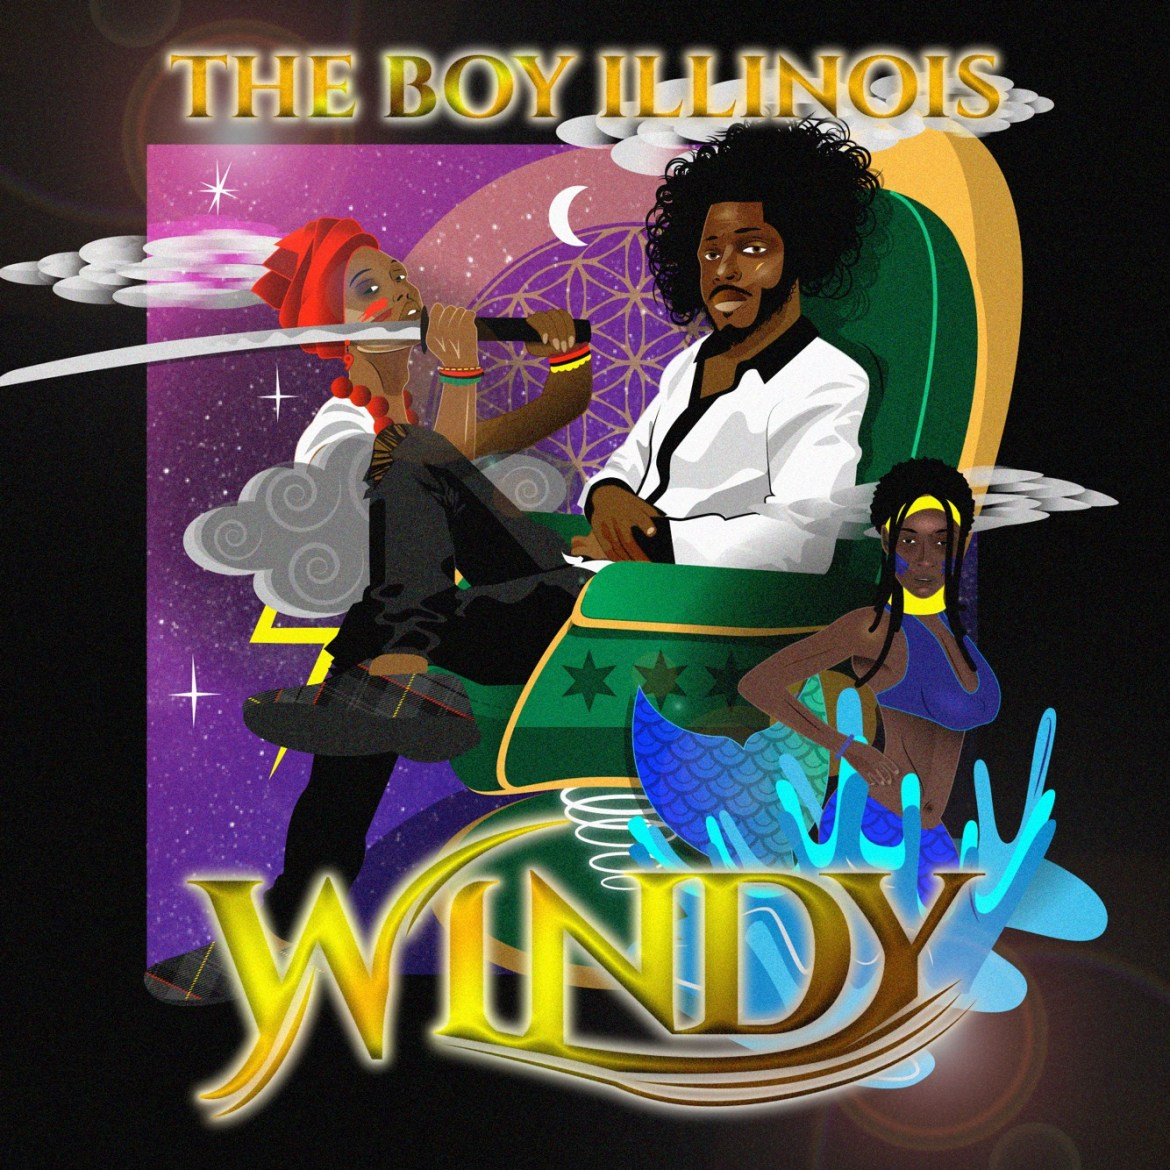 The Boy Illinois- WINDY